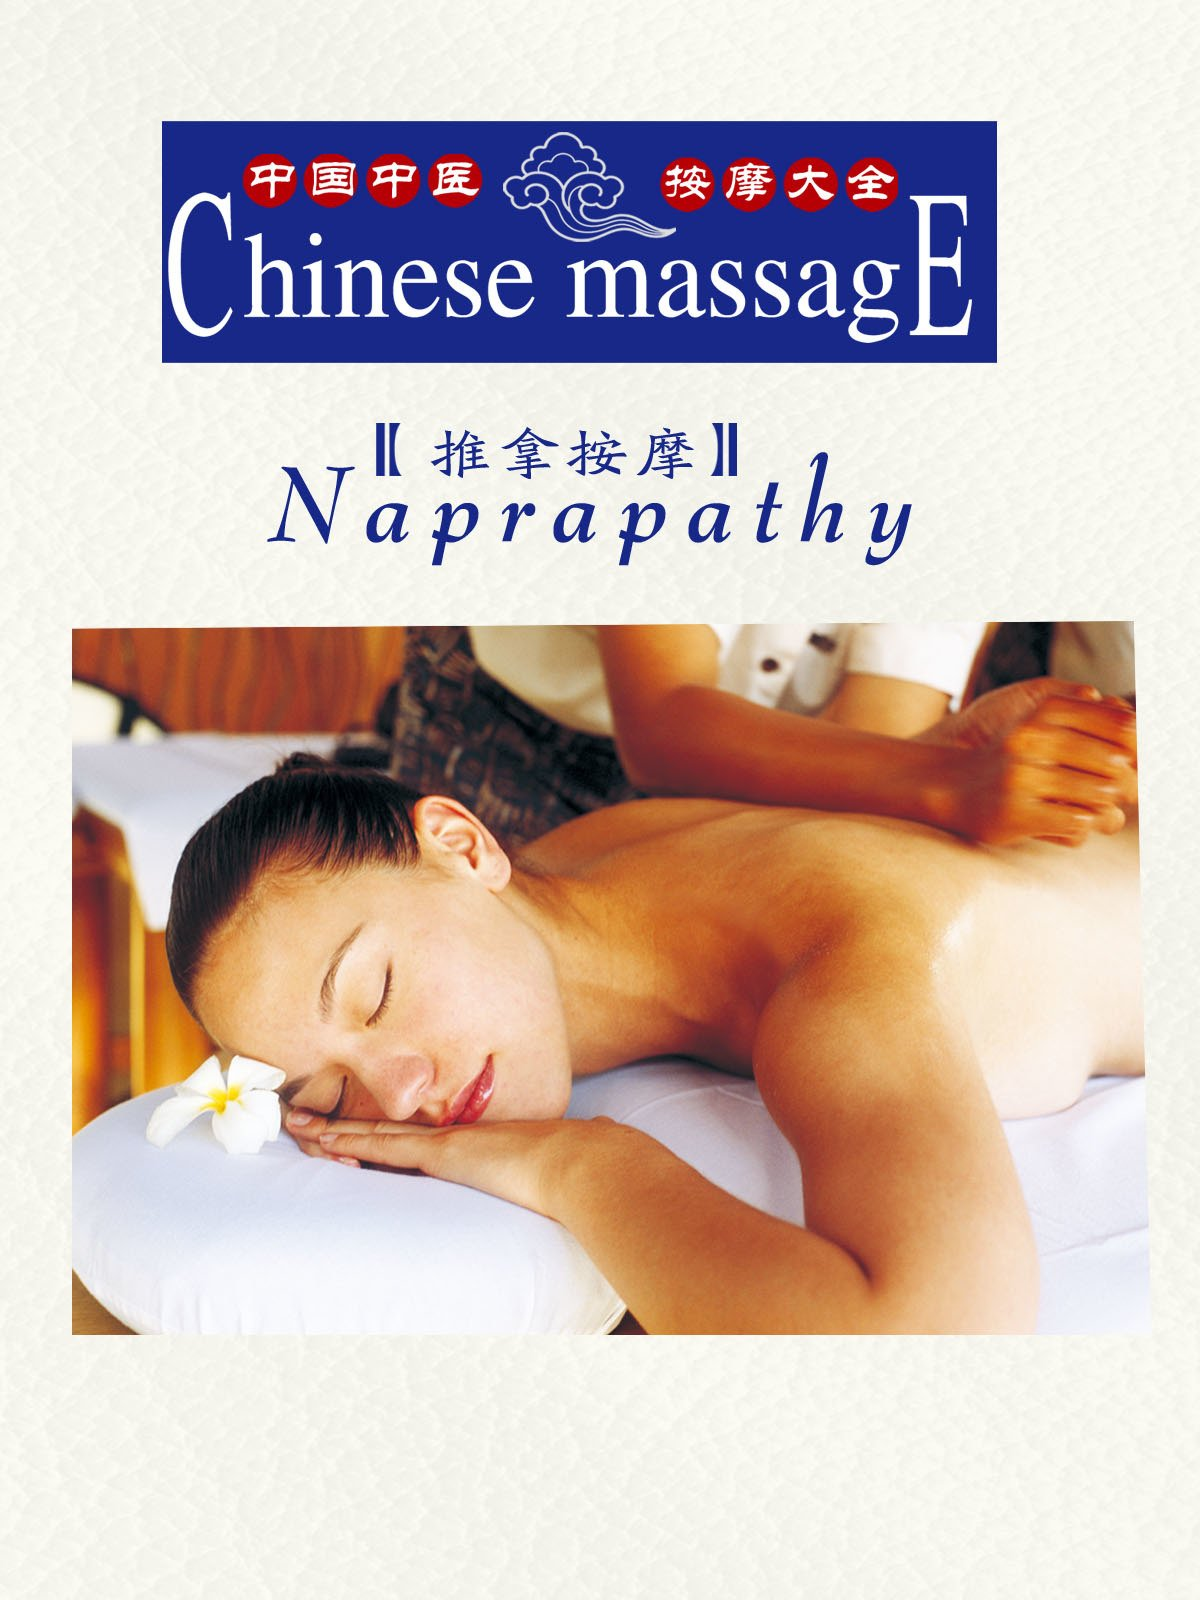 Chinese Massage-Naprapathy